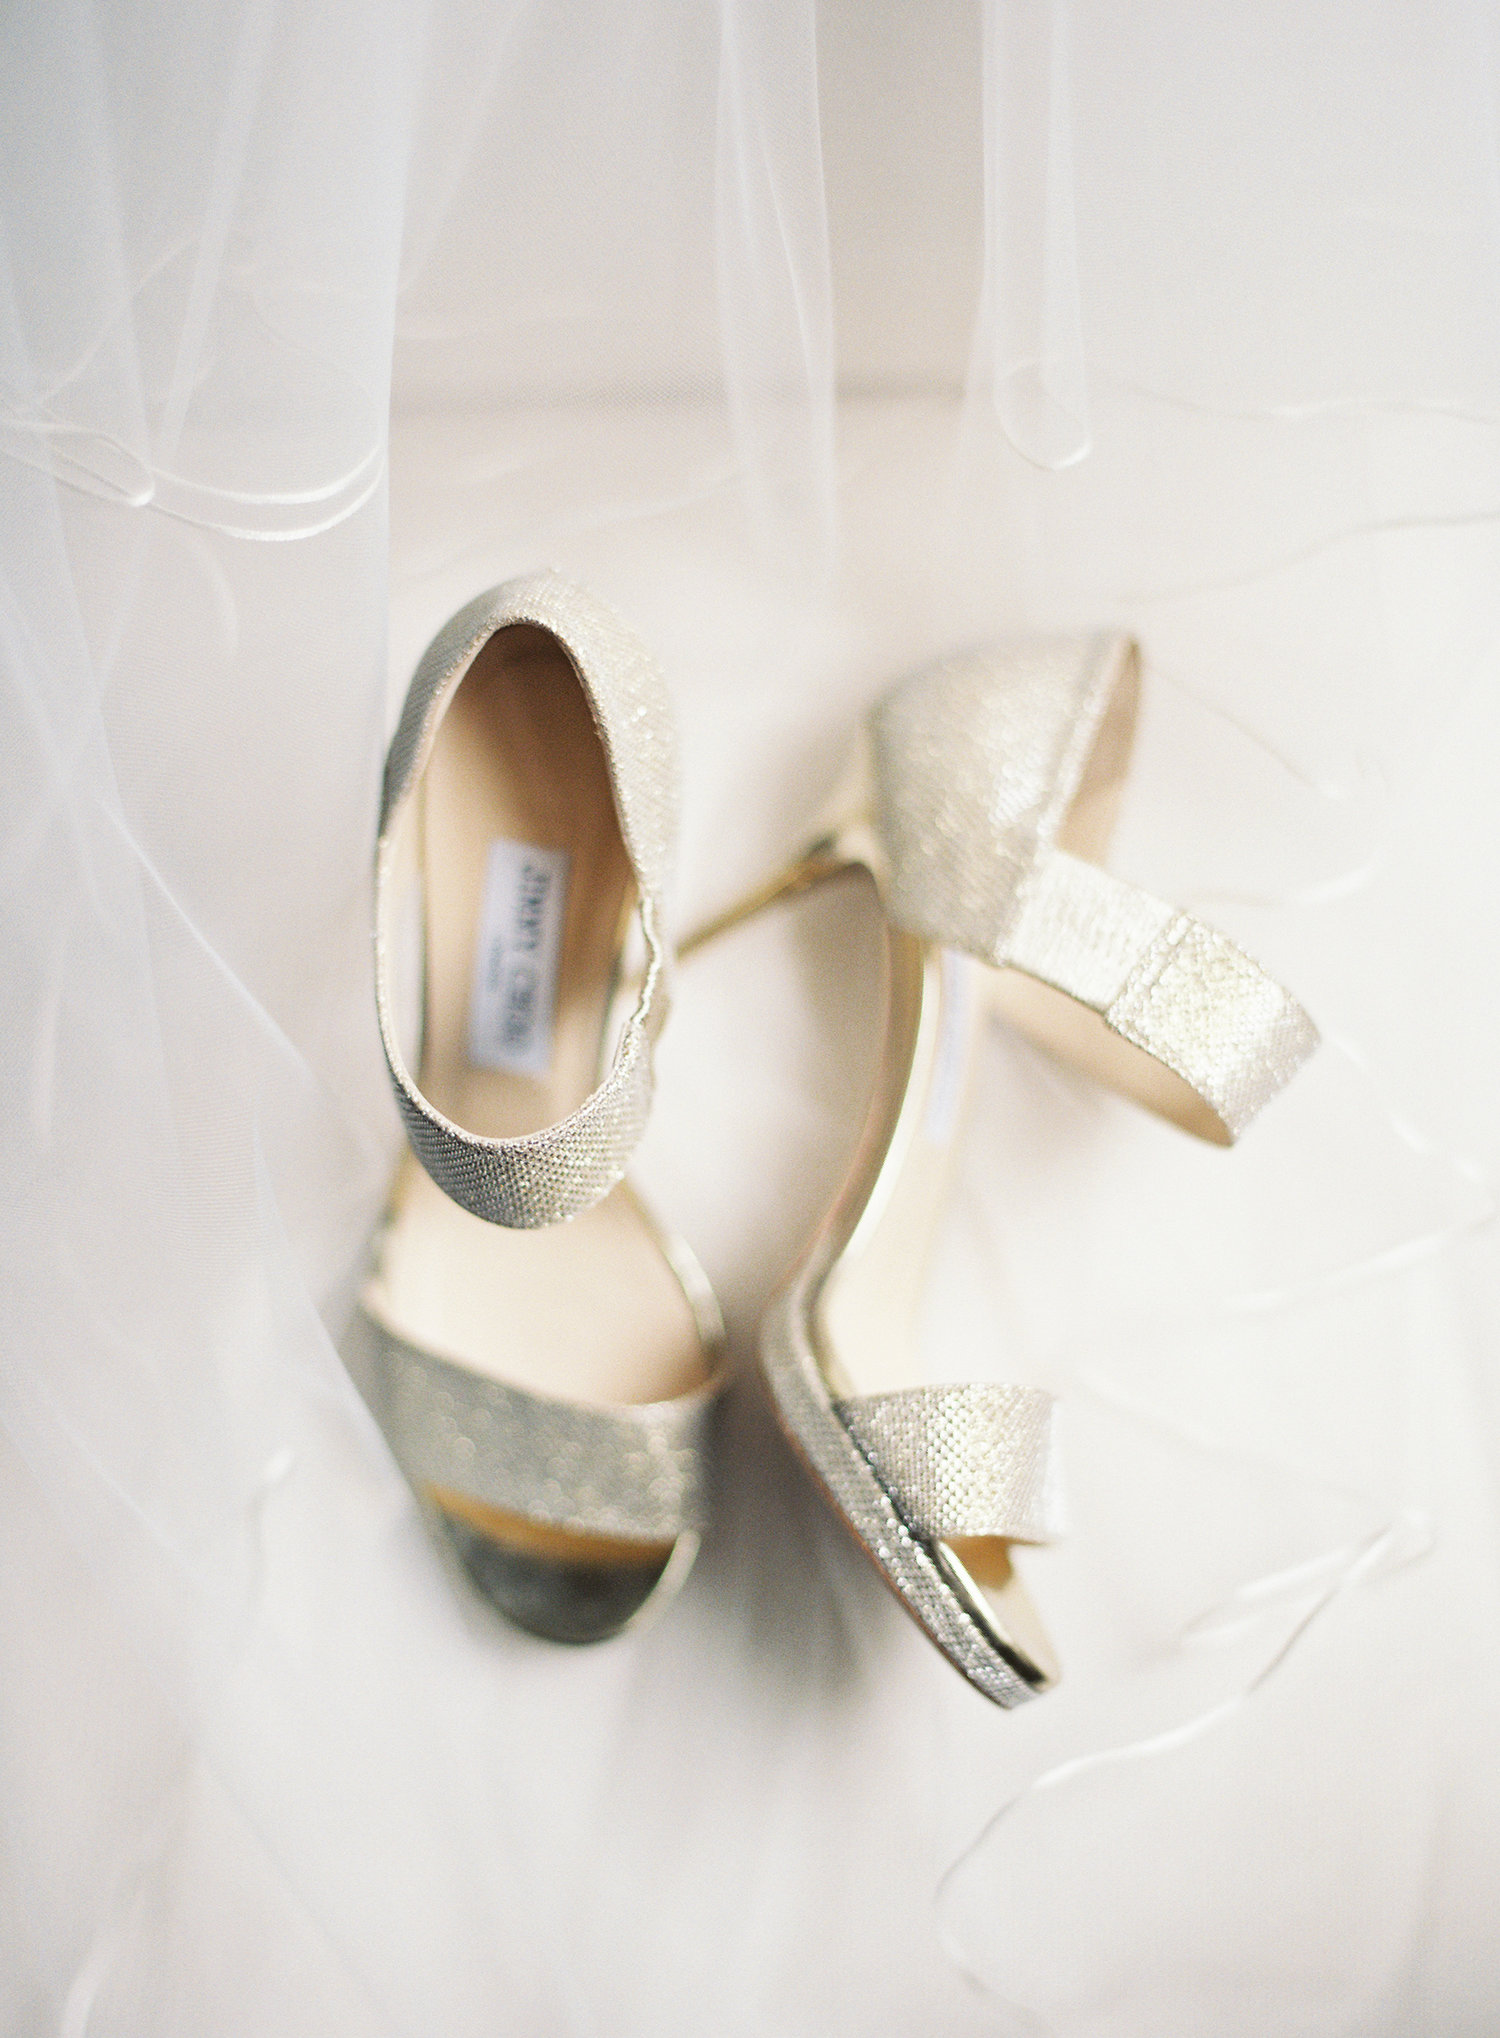 sparkly gold pumps next to the white train of a wedding gown